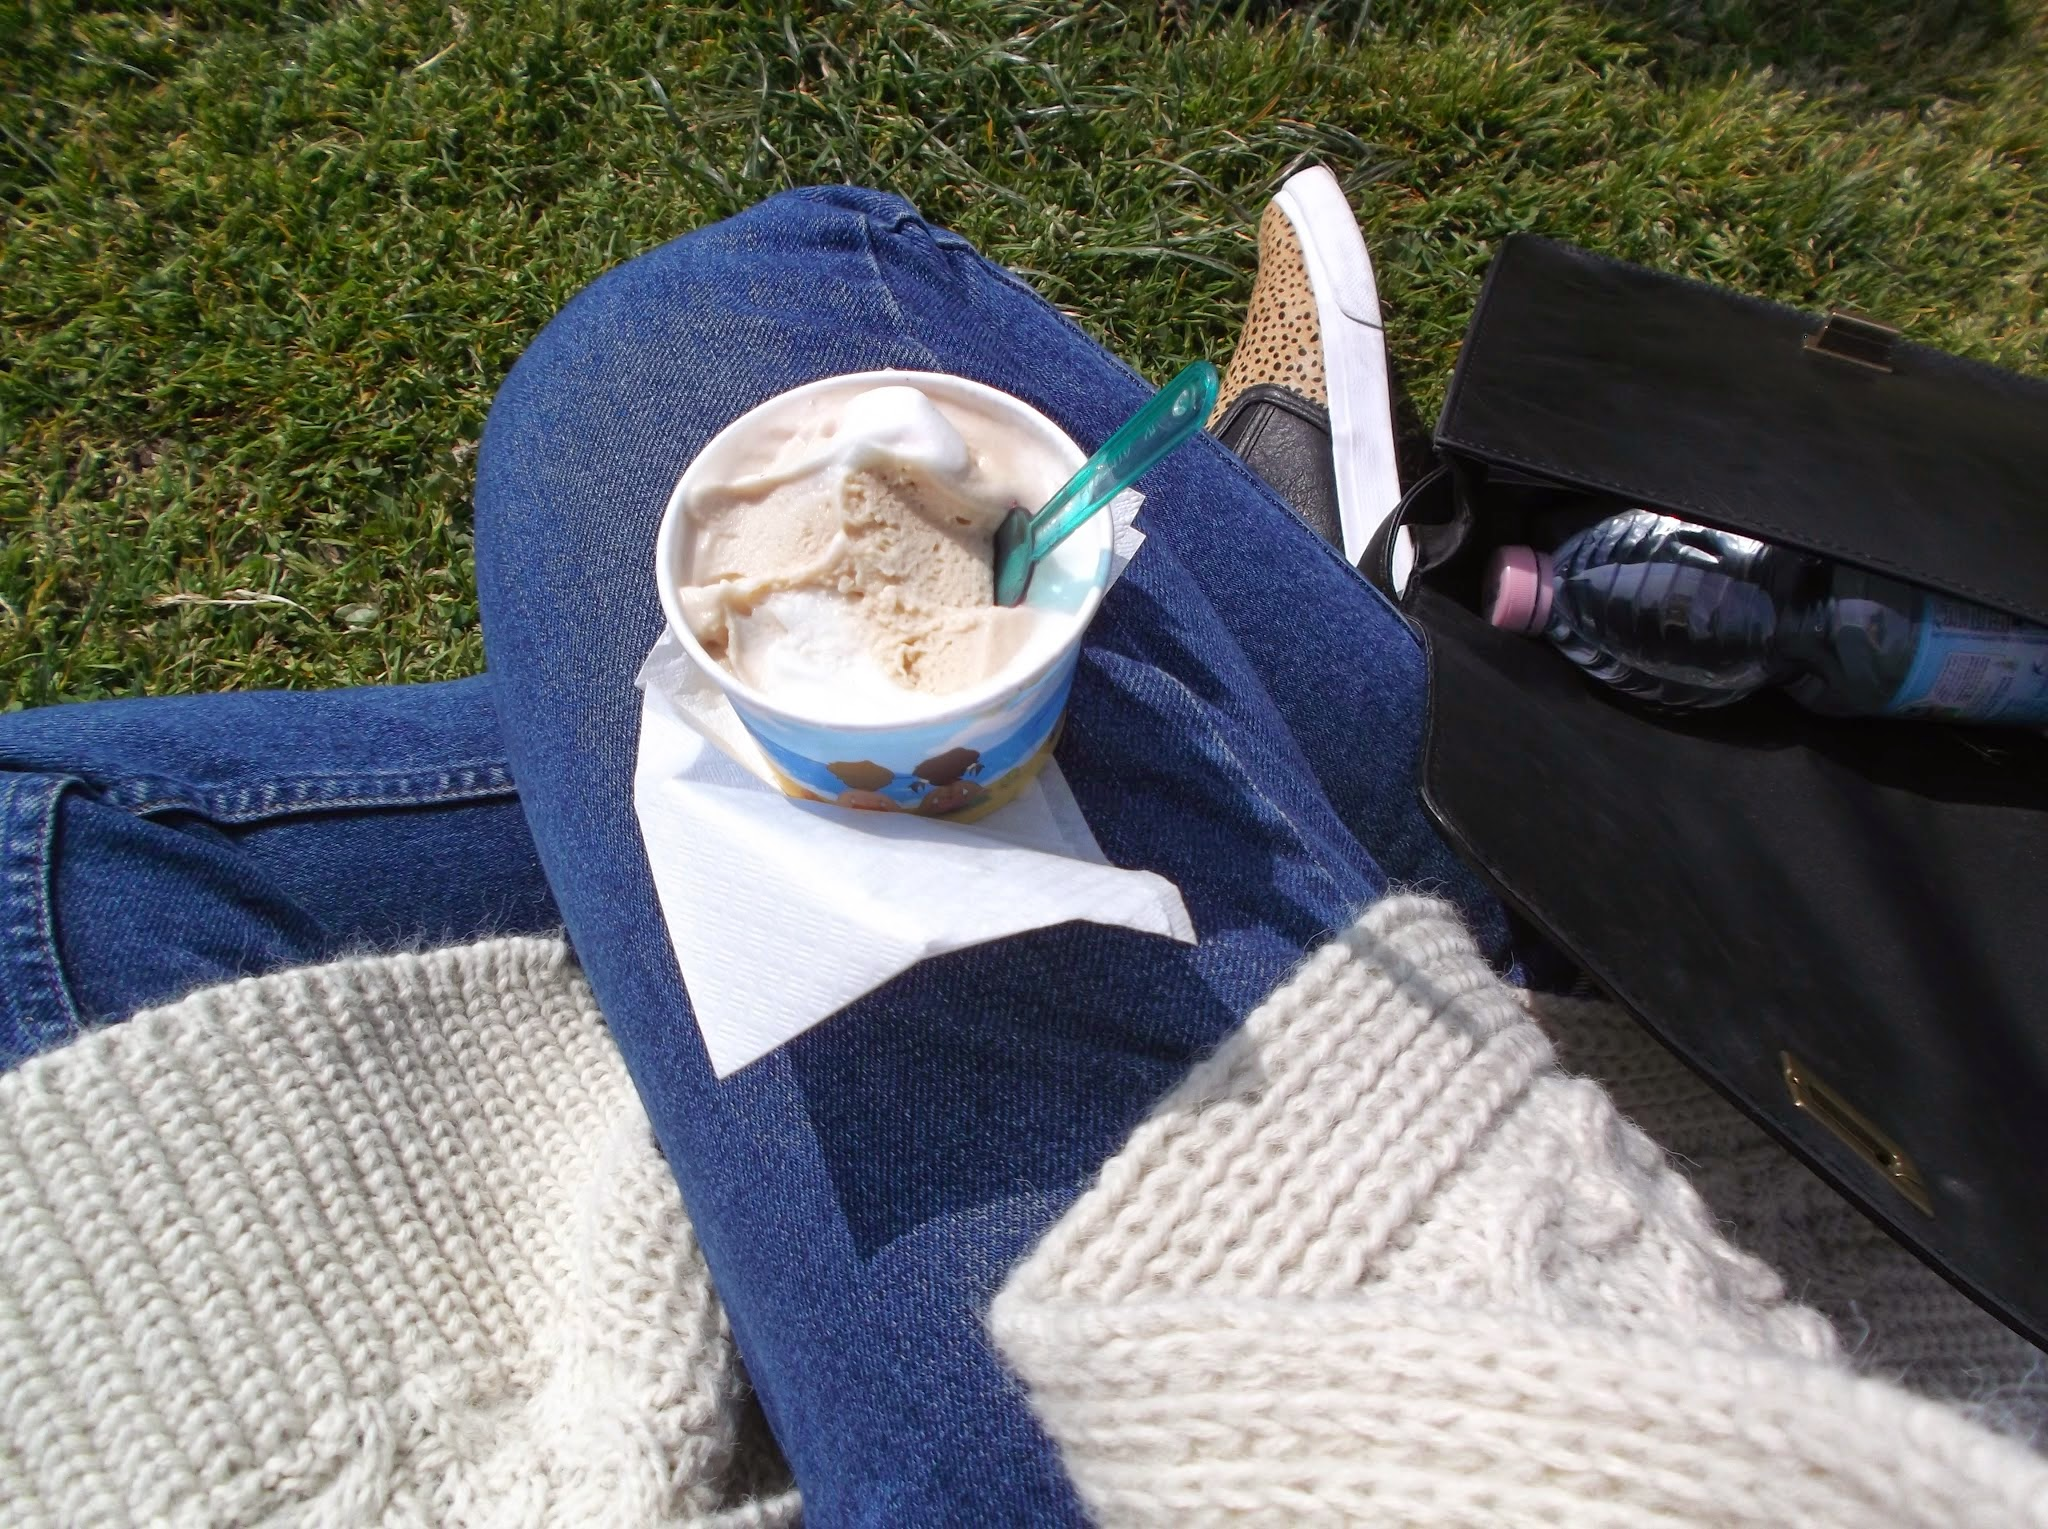 ice cream in the park